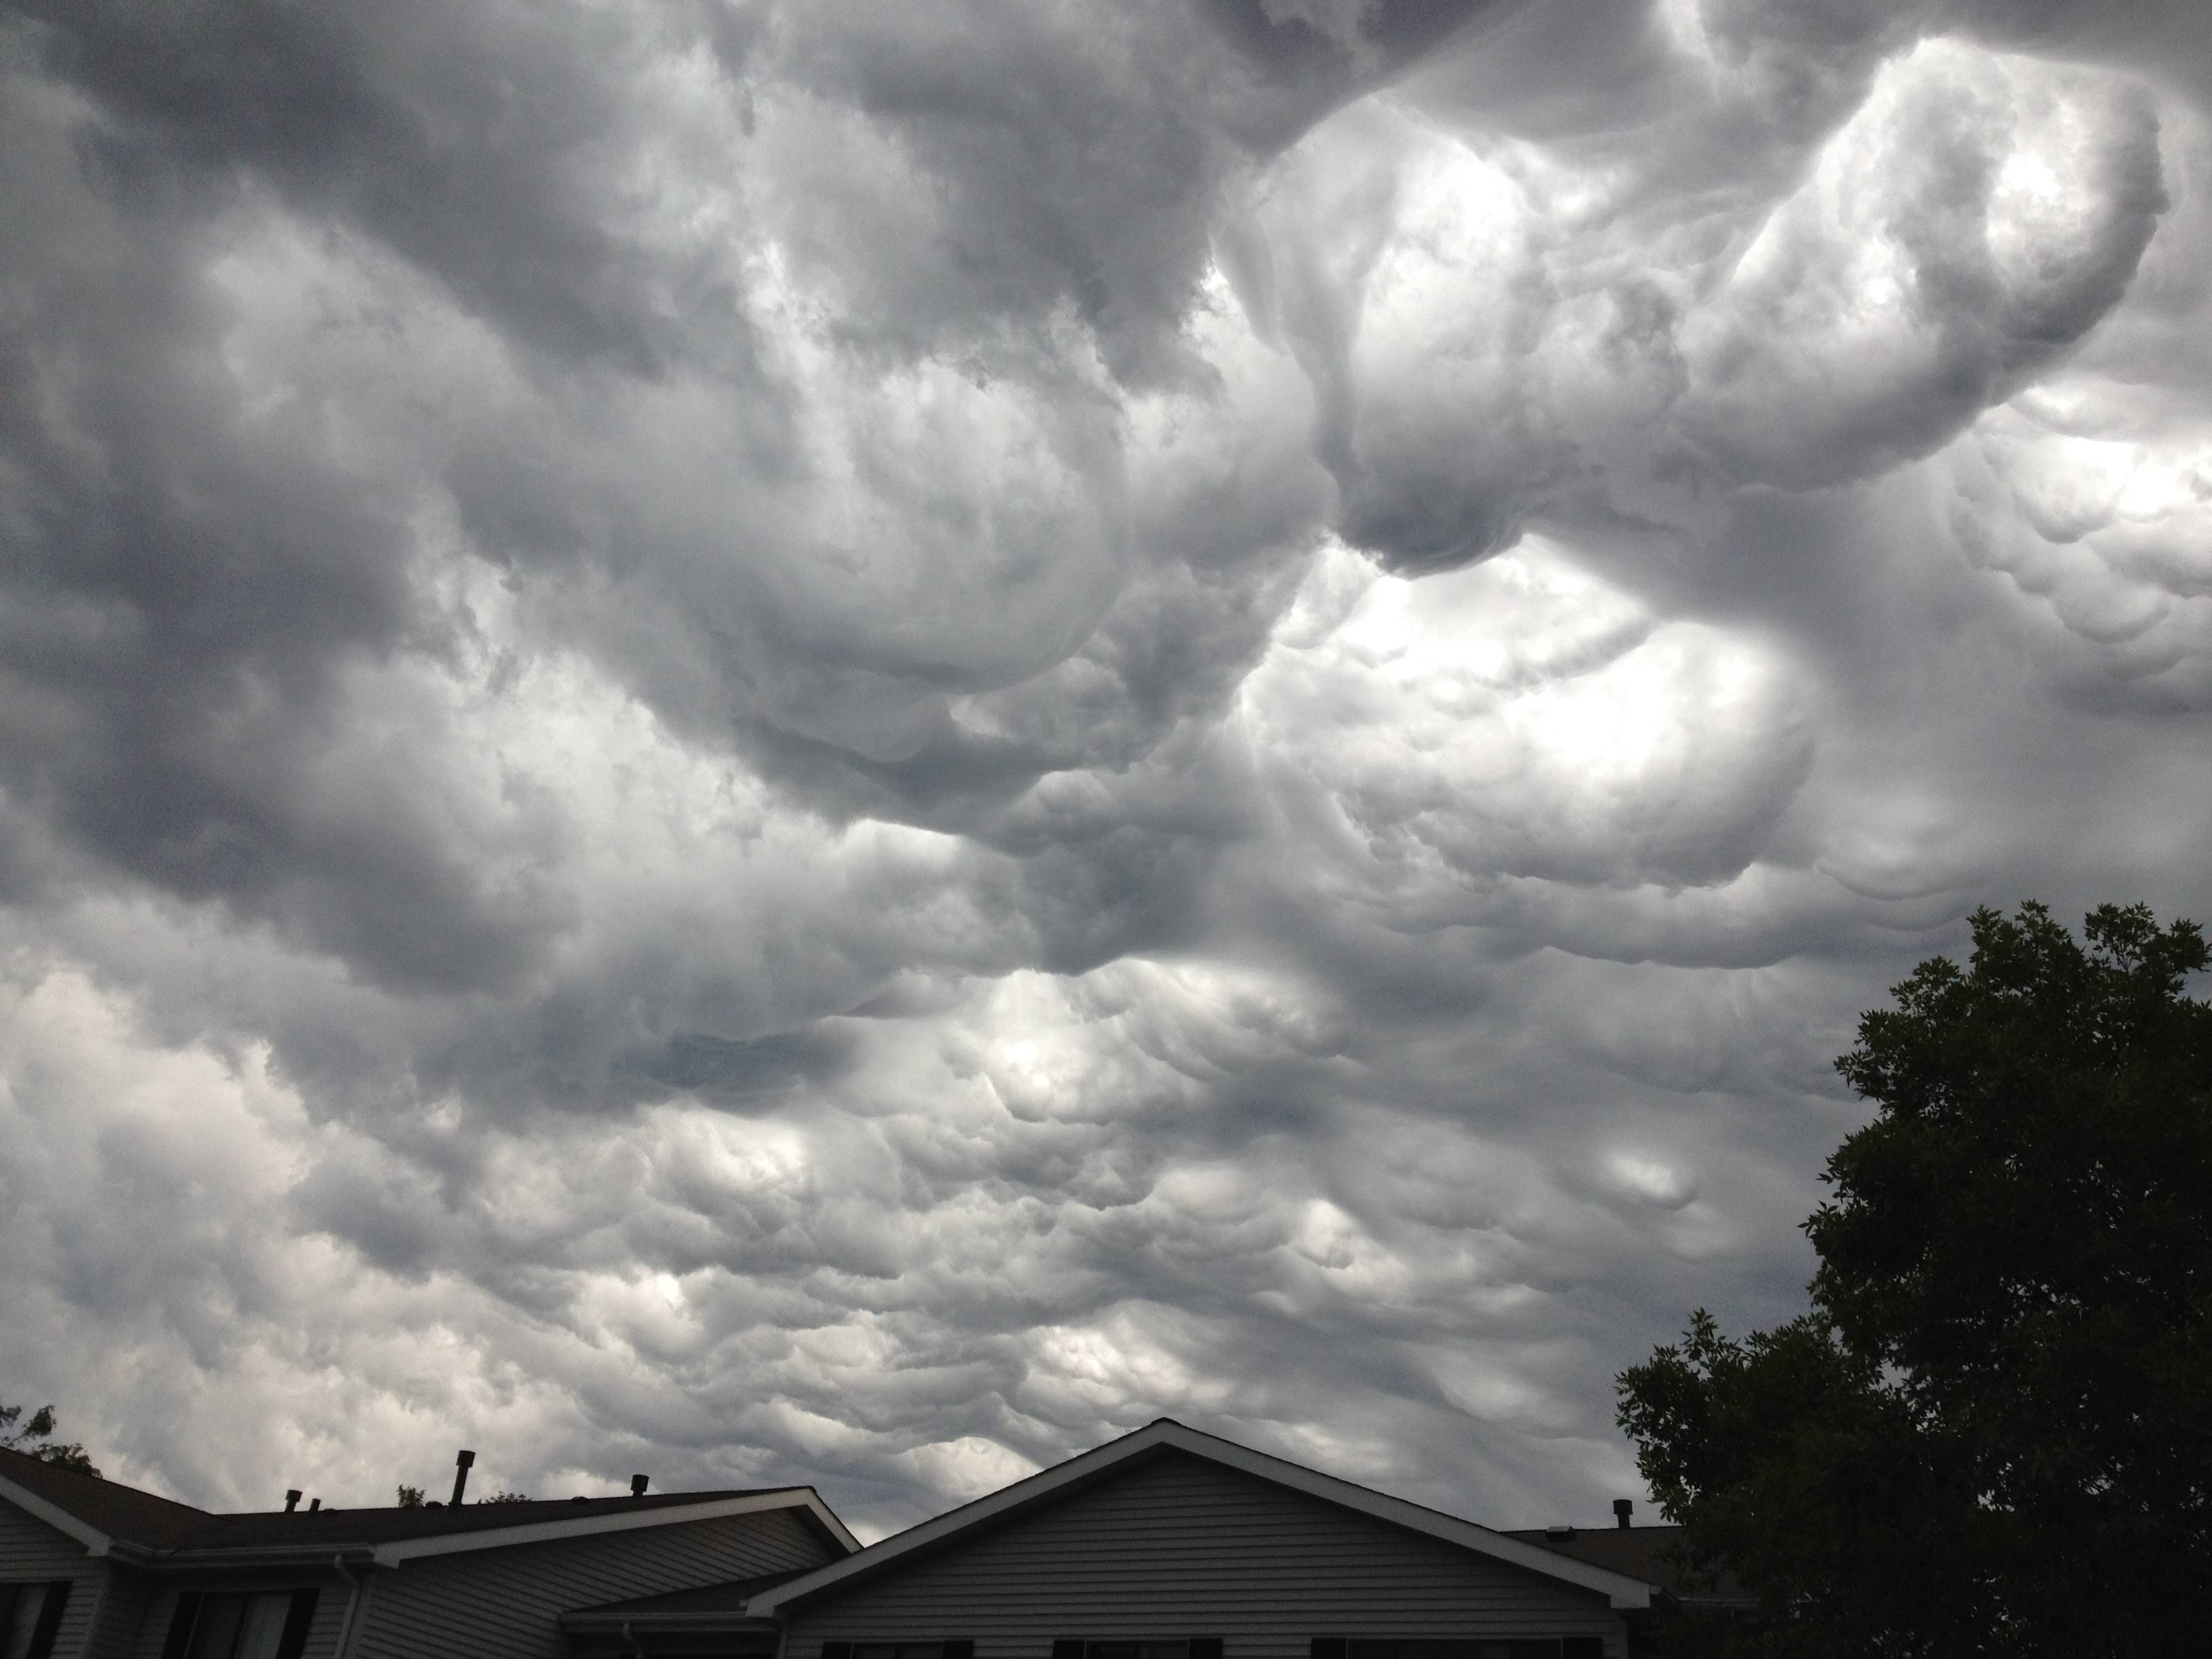 Images: Severe storms roll through the suburbs